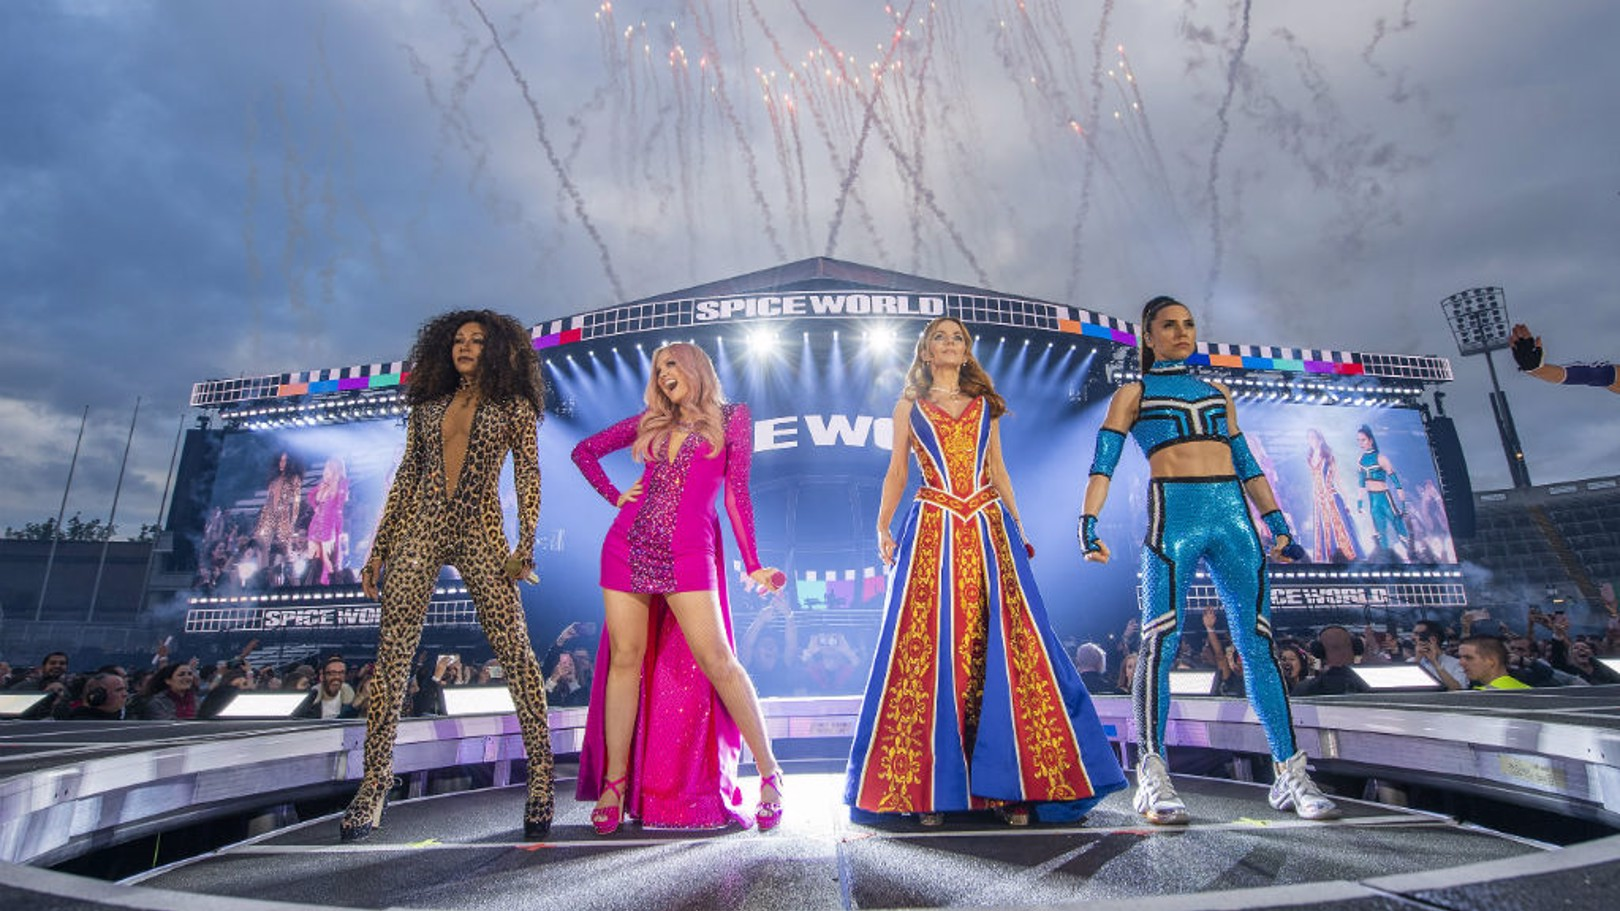 SHOW TIME: The Spice Girls will be playing three shows at the Etihad Stadium